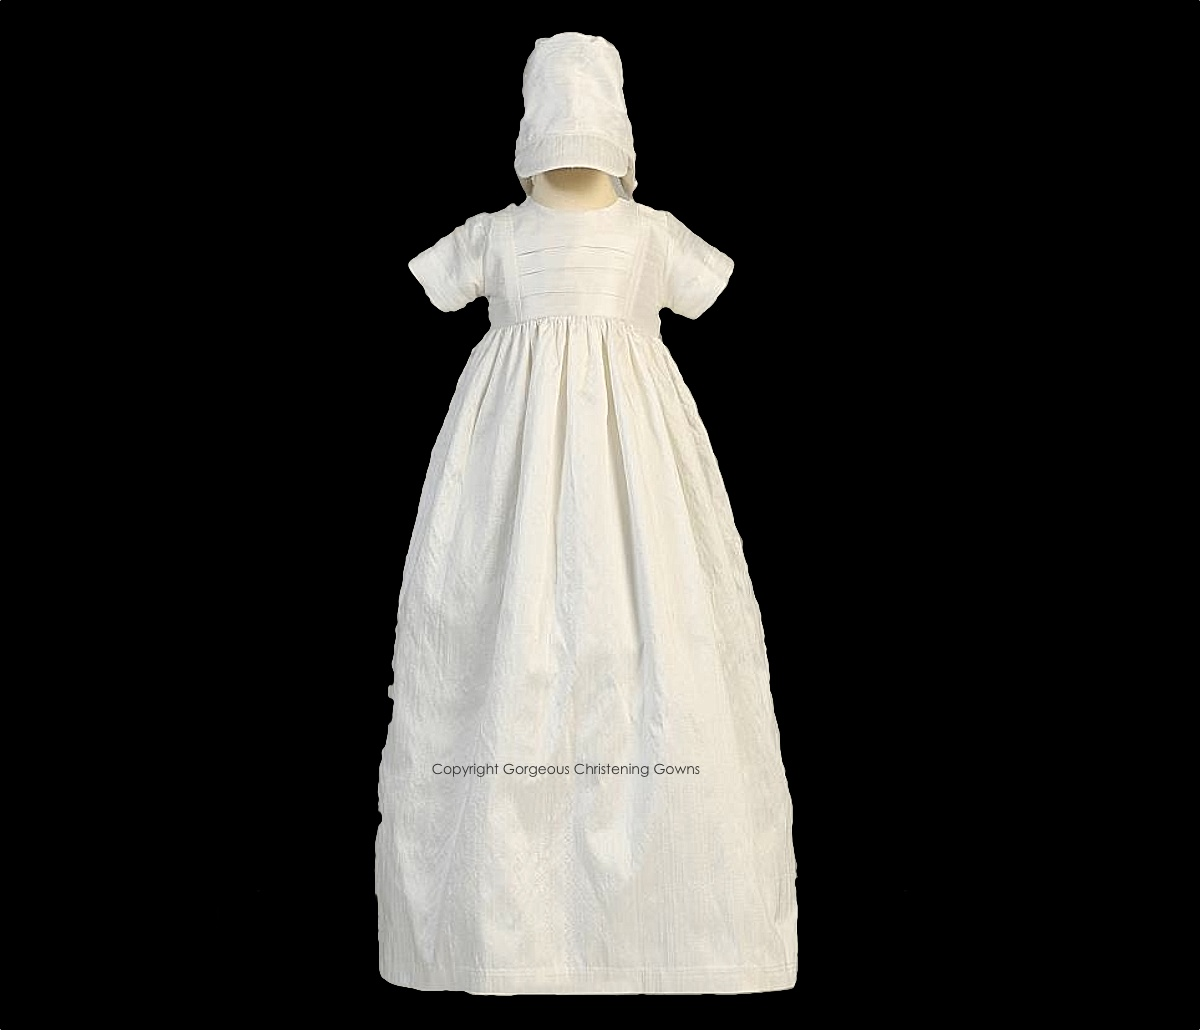 UNISEX CHRISTENING GOWNS - BOYS BONNET